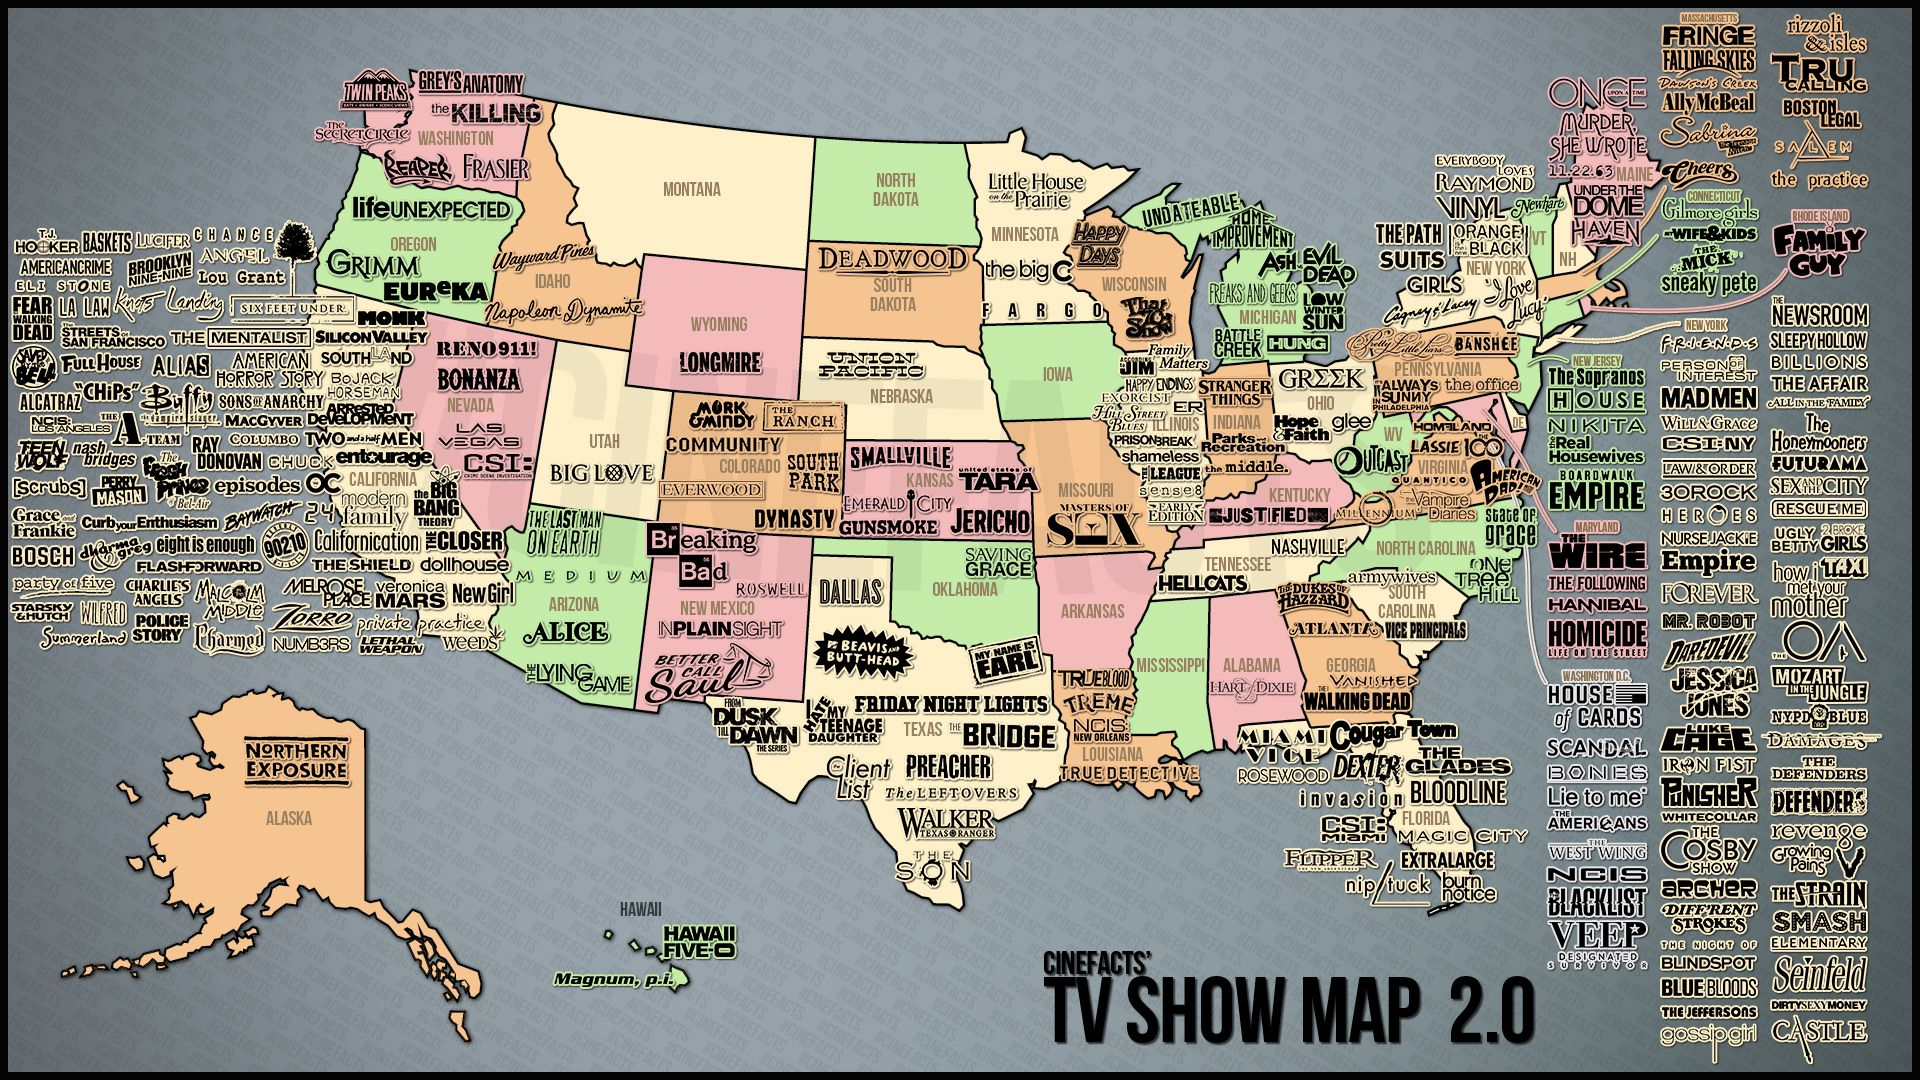 Show A Us Map U.S. map of TV shows | Us map, Map, The americans tv show